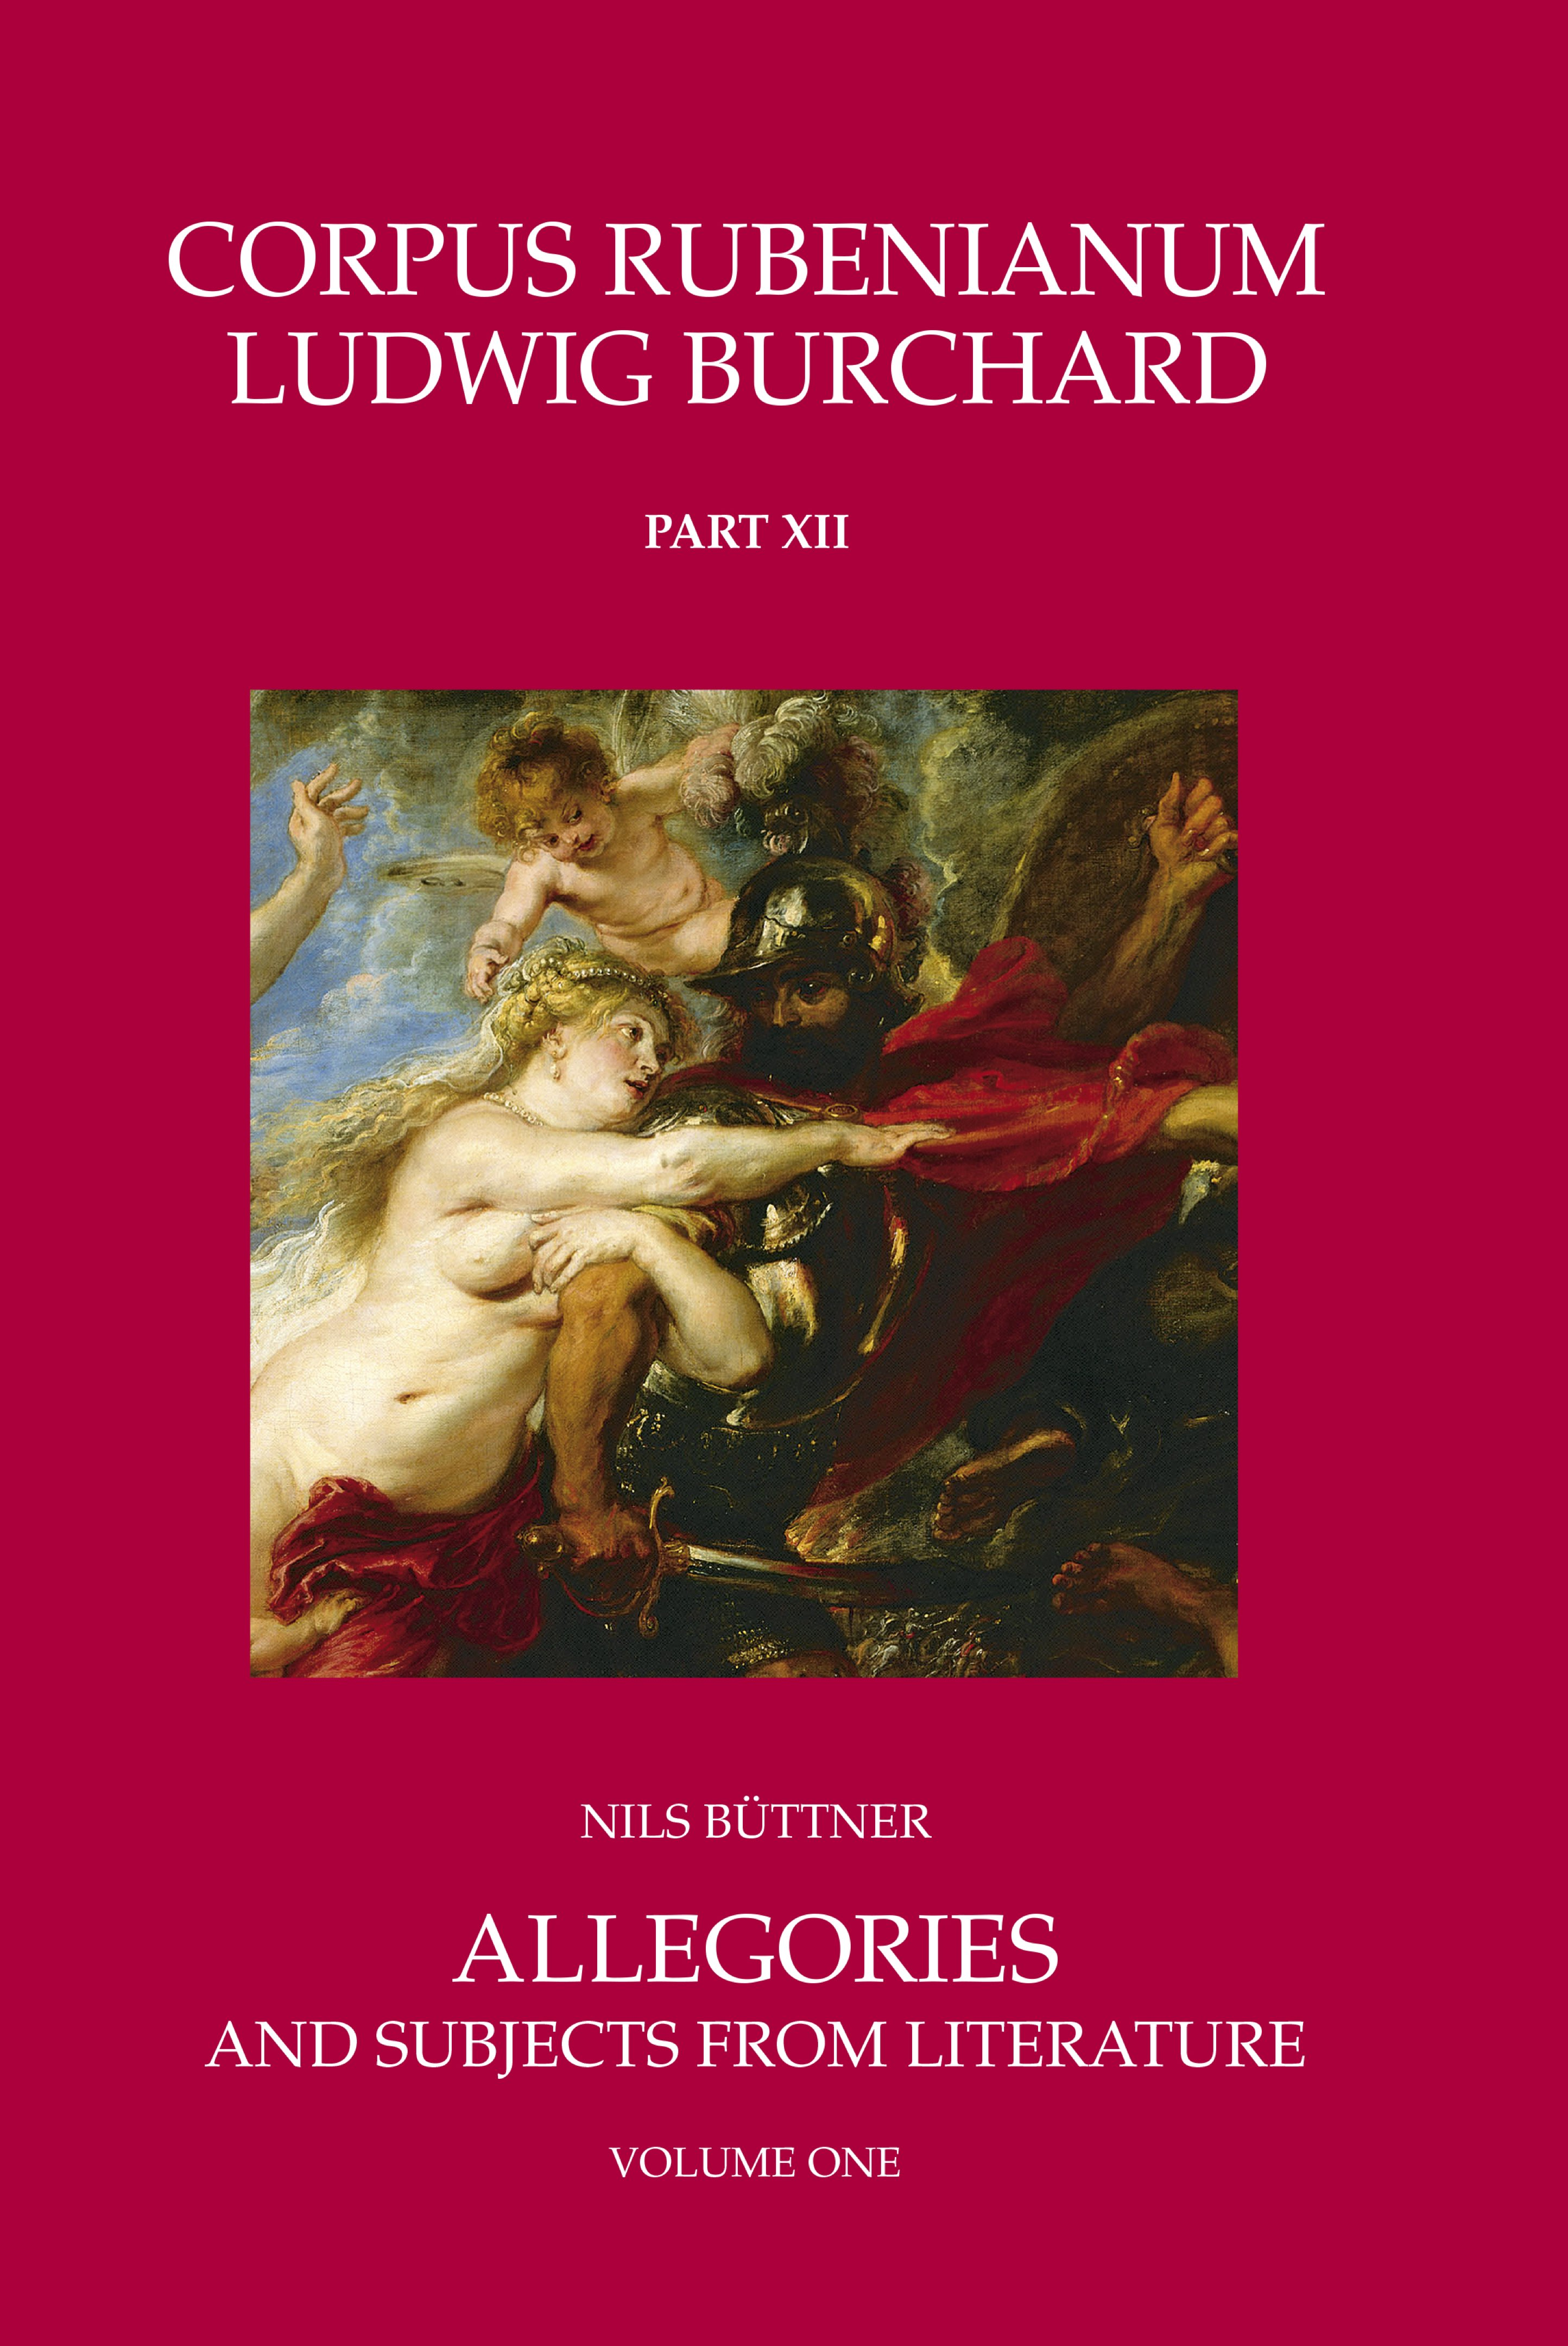 Allegories and Subjects from Literature